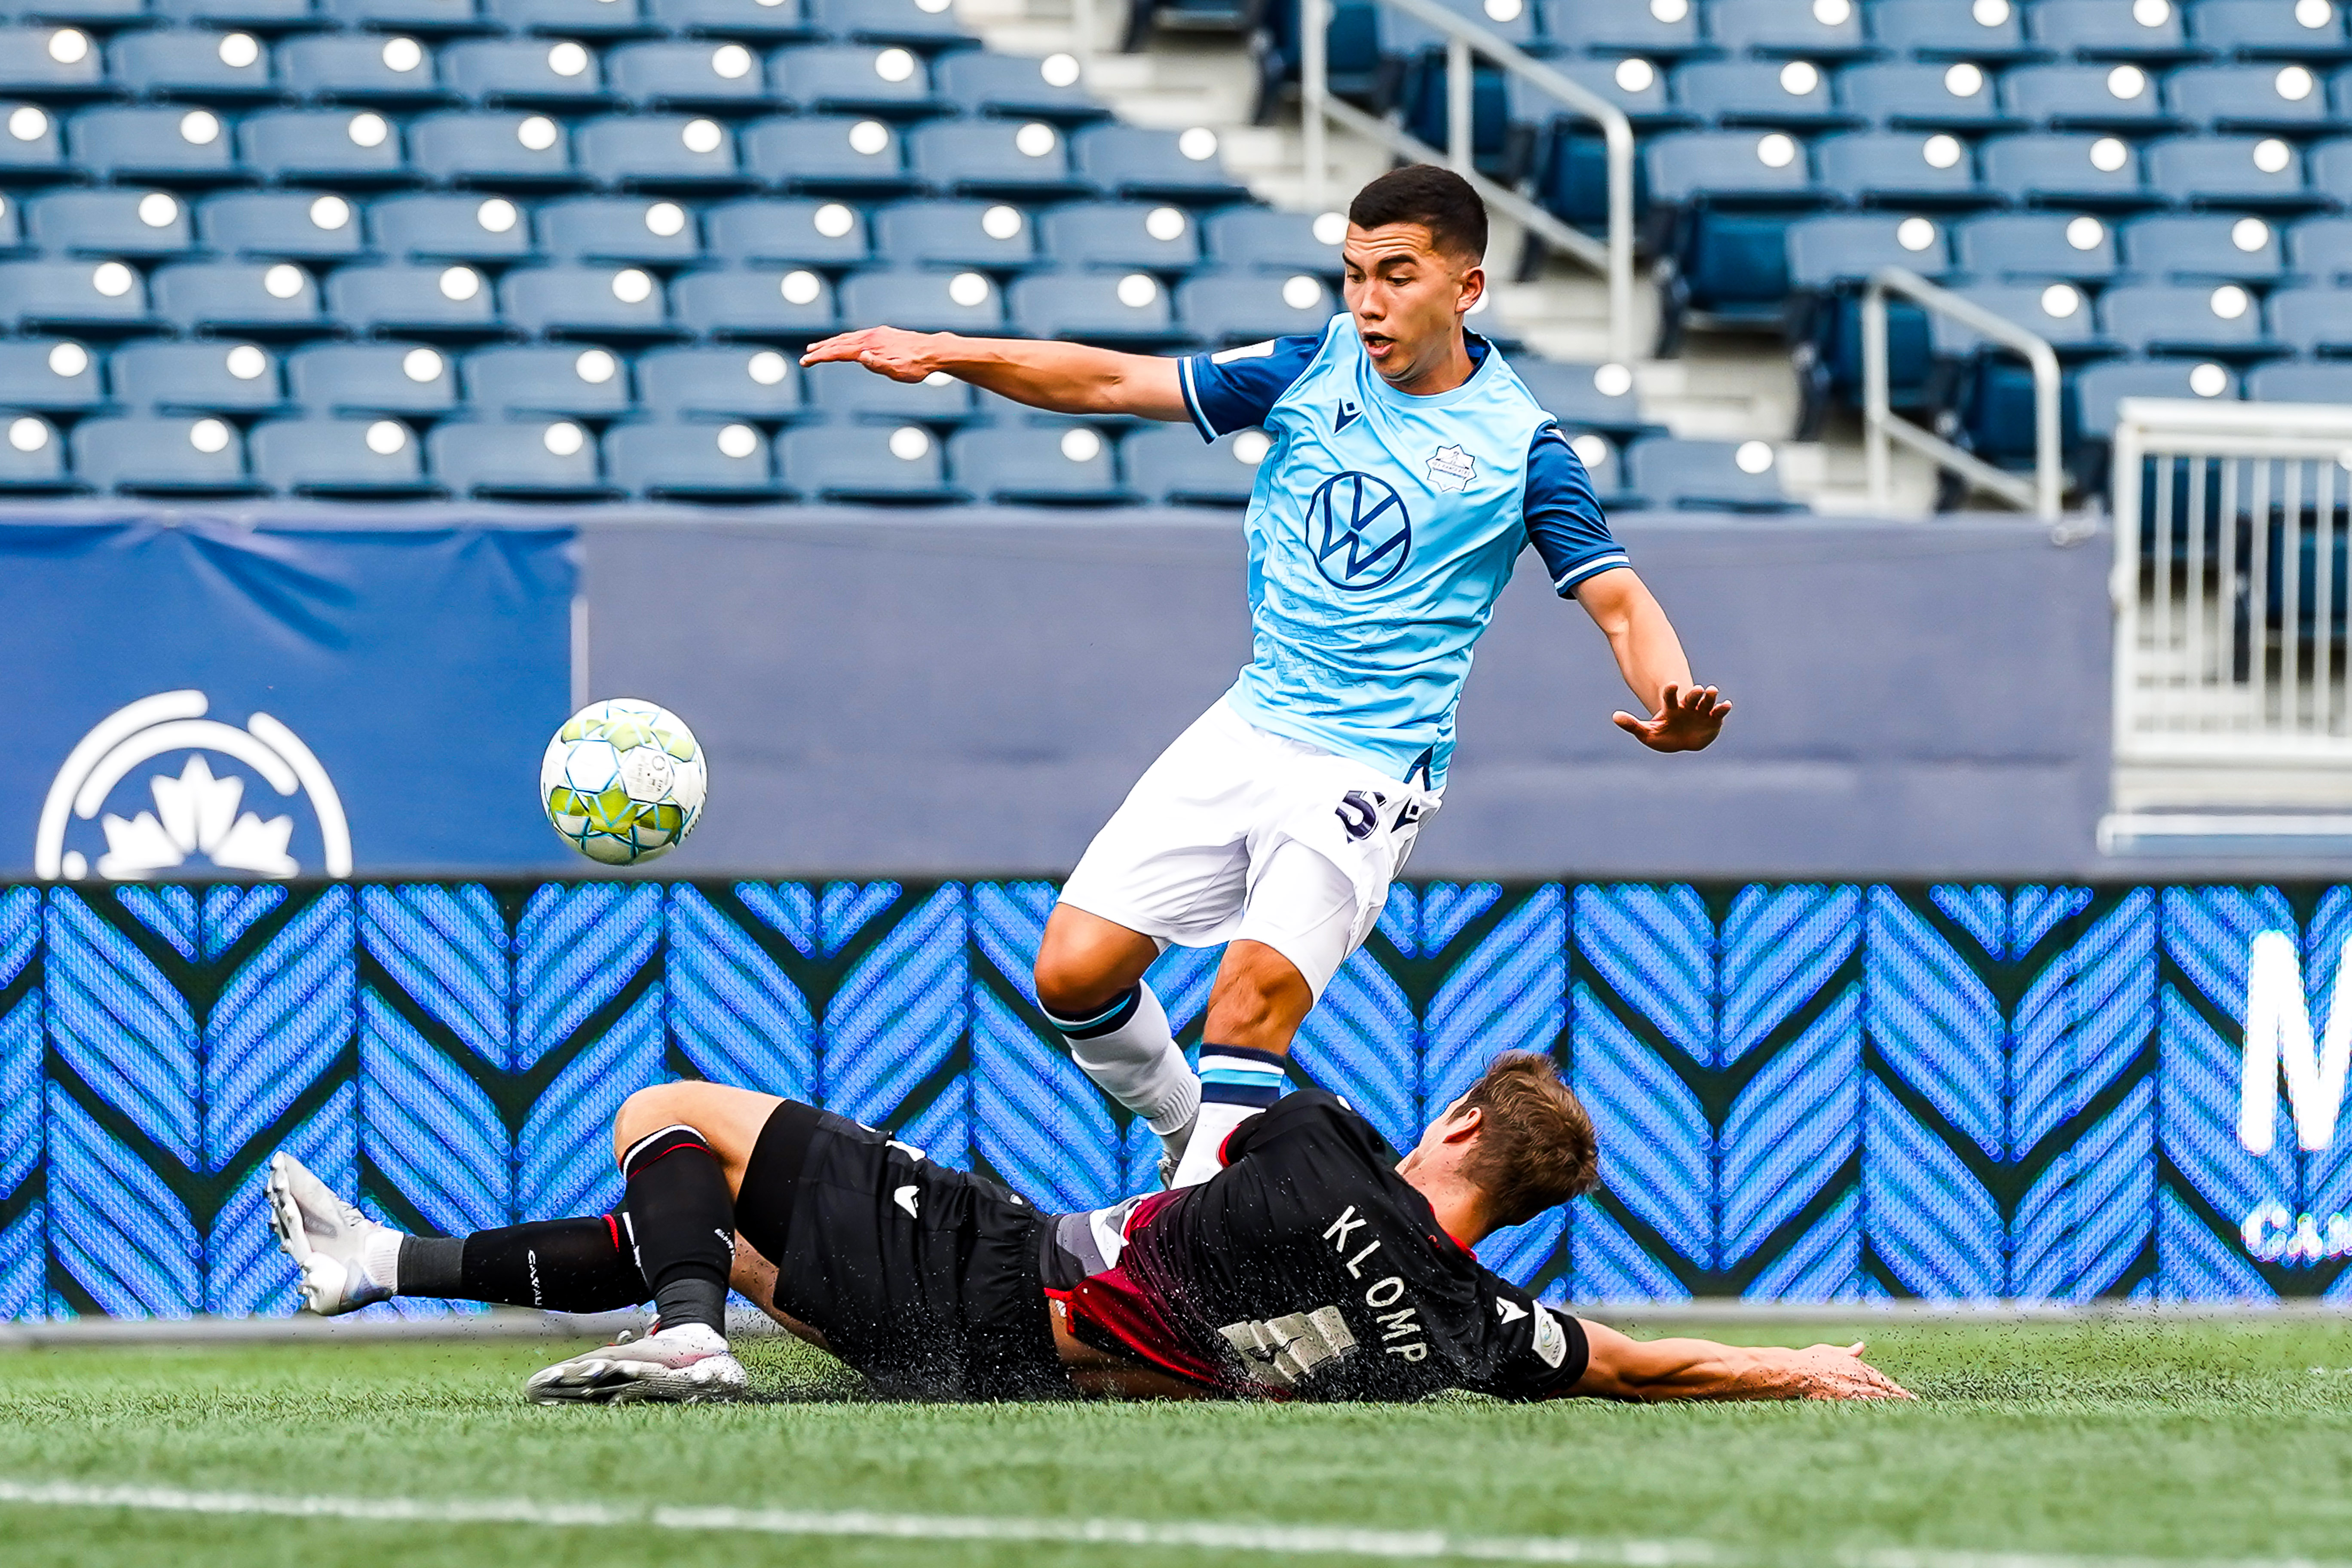 July 17, 2021. HFX Wanderers FC vs Cavalry FC. First-Half. Daan Klomp of Cavalry FC makes a sliding tackle in front of Pierre Lamothe of HFX Wanderers FC.